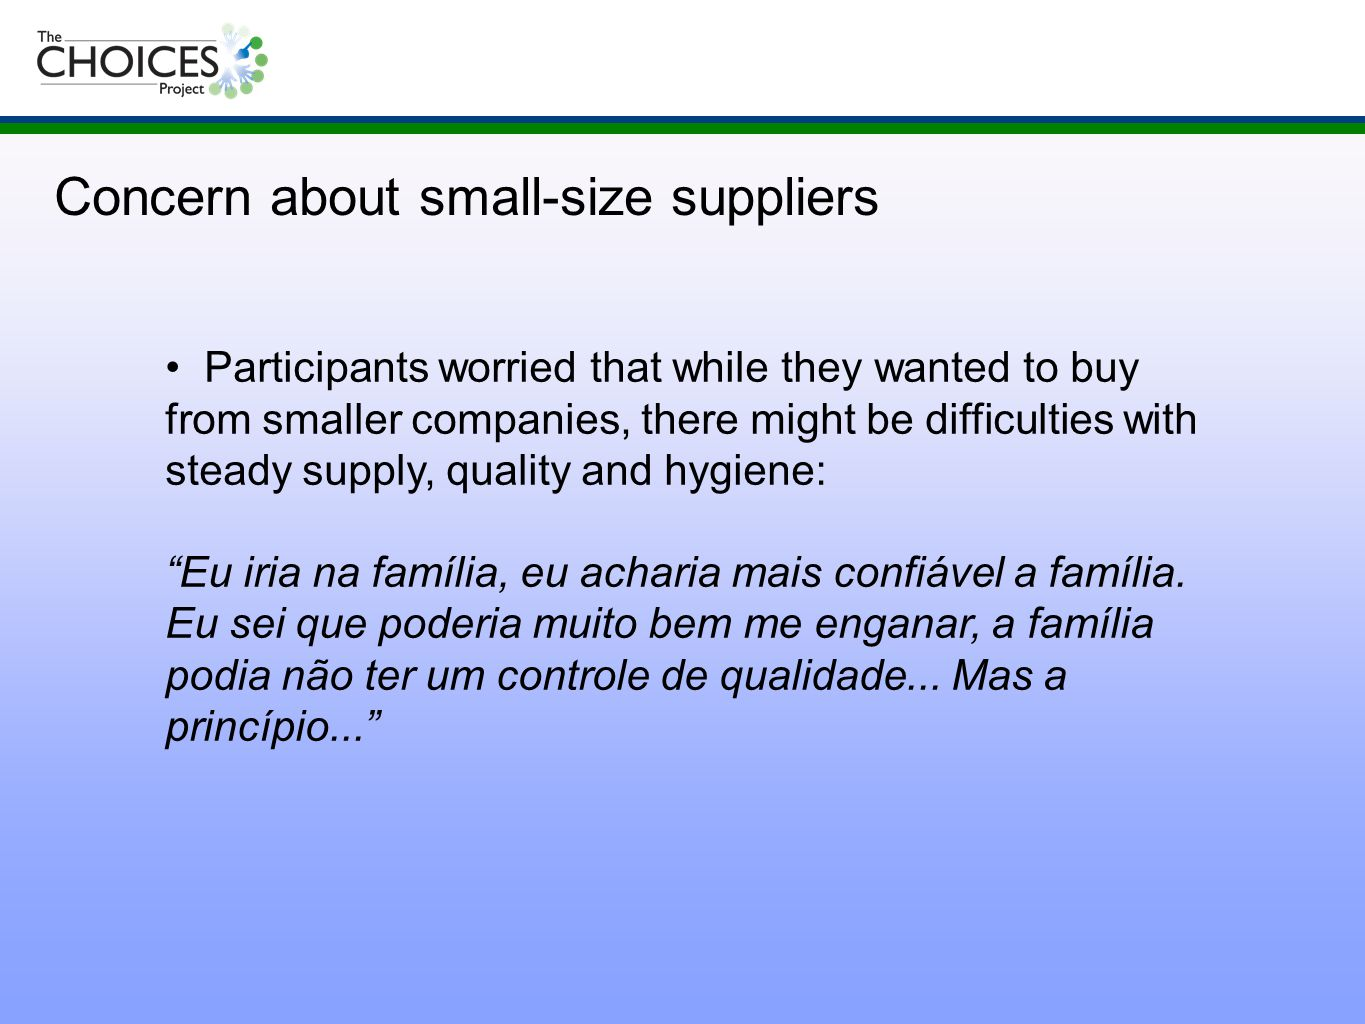 Participants worried that while they wanted to buy from smaller companies, there might be difficulties with steady supply, quality and hygiene: Eu iria na família, eu acharia mais confiável a família.